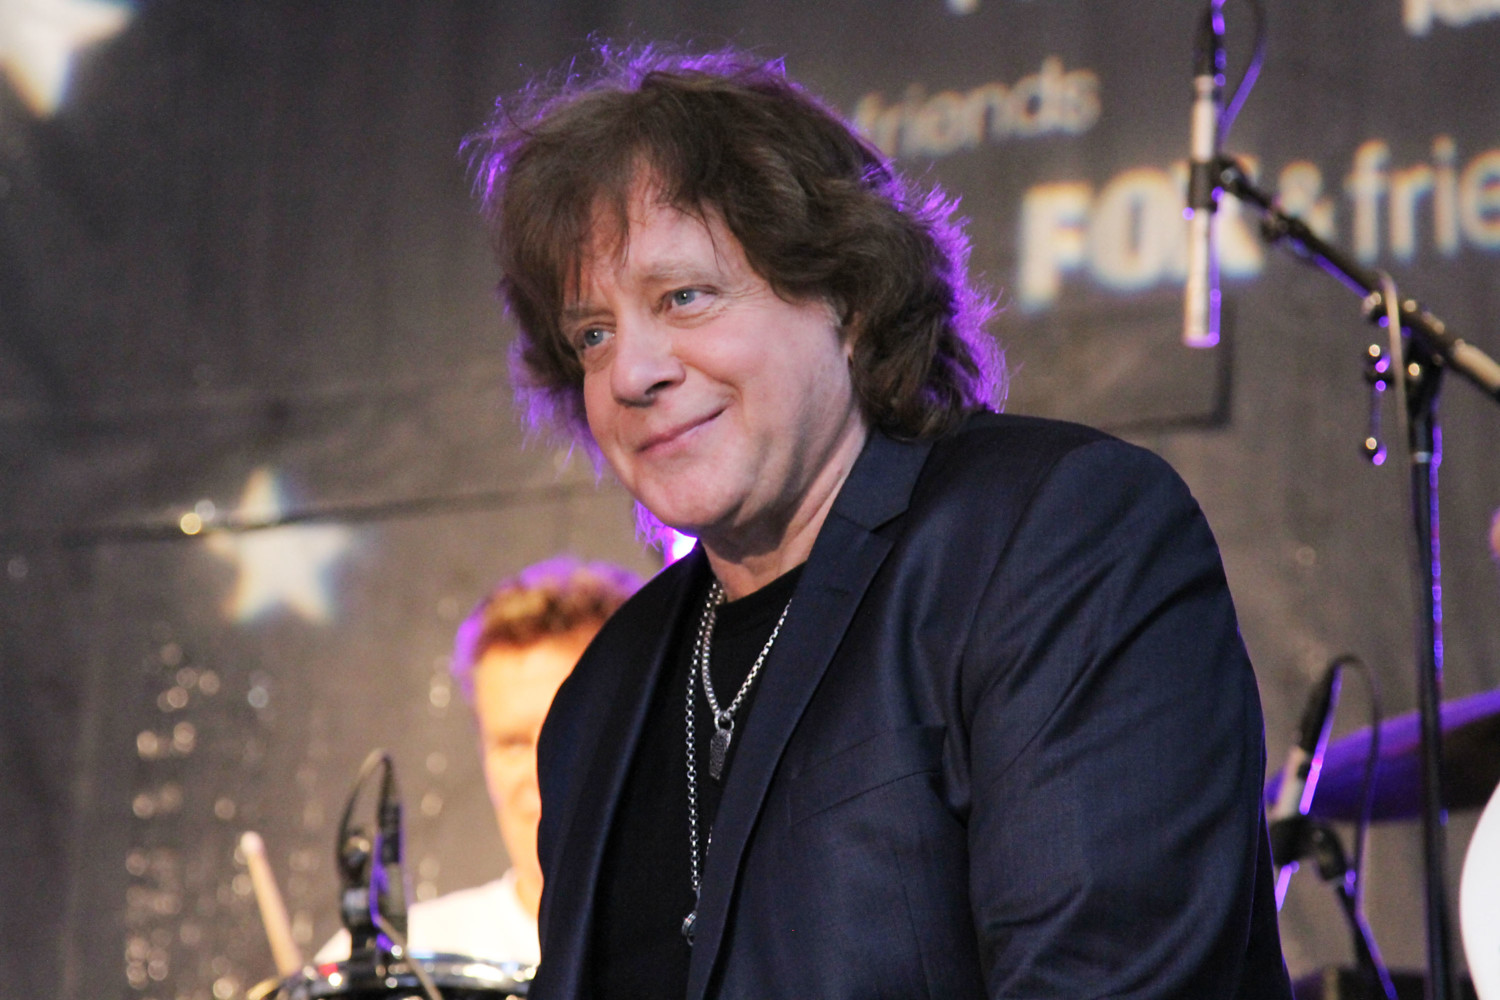 eddie money photo